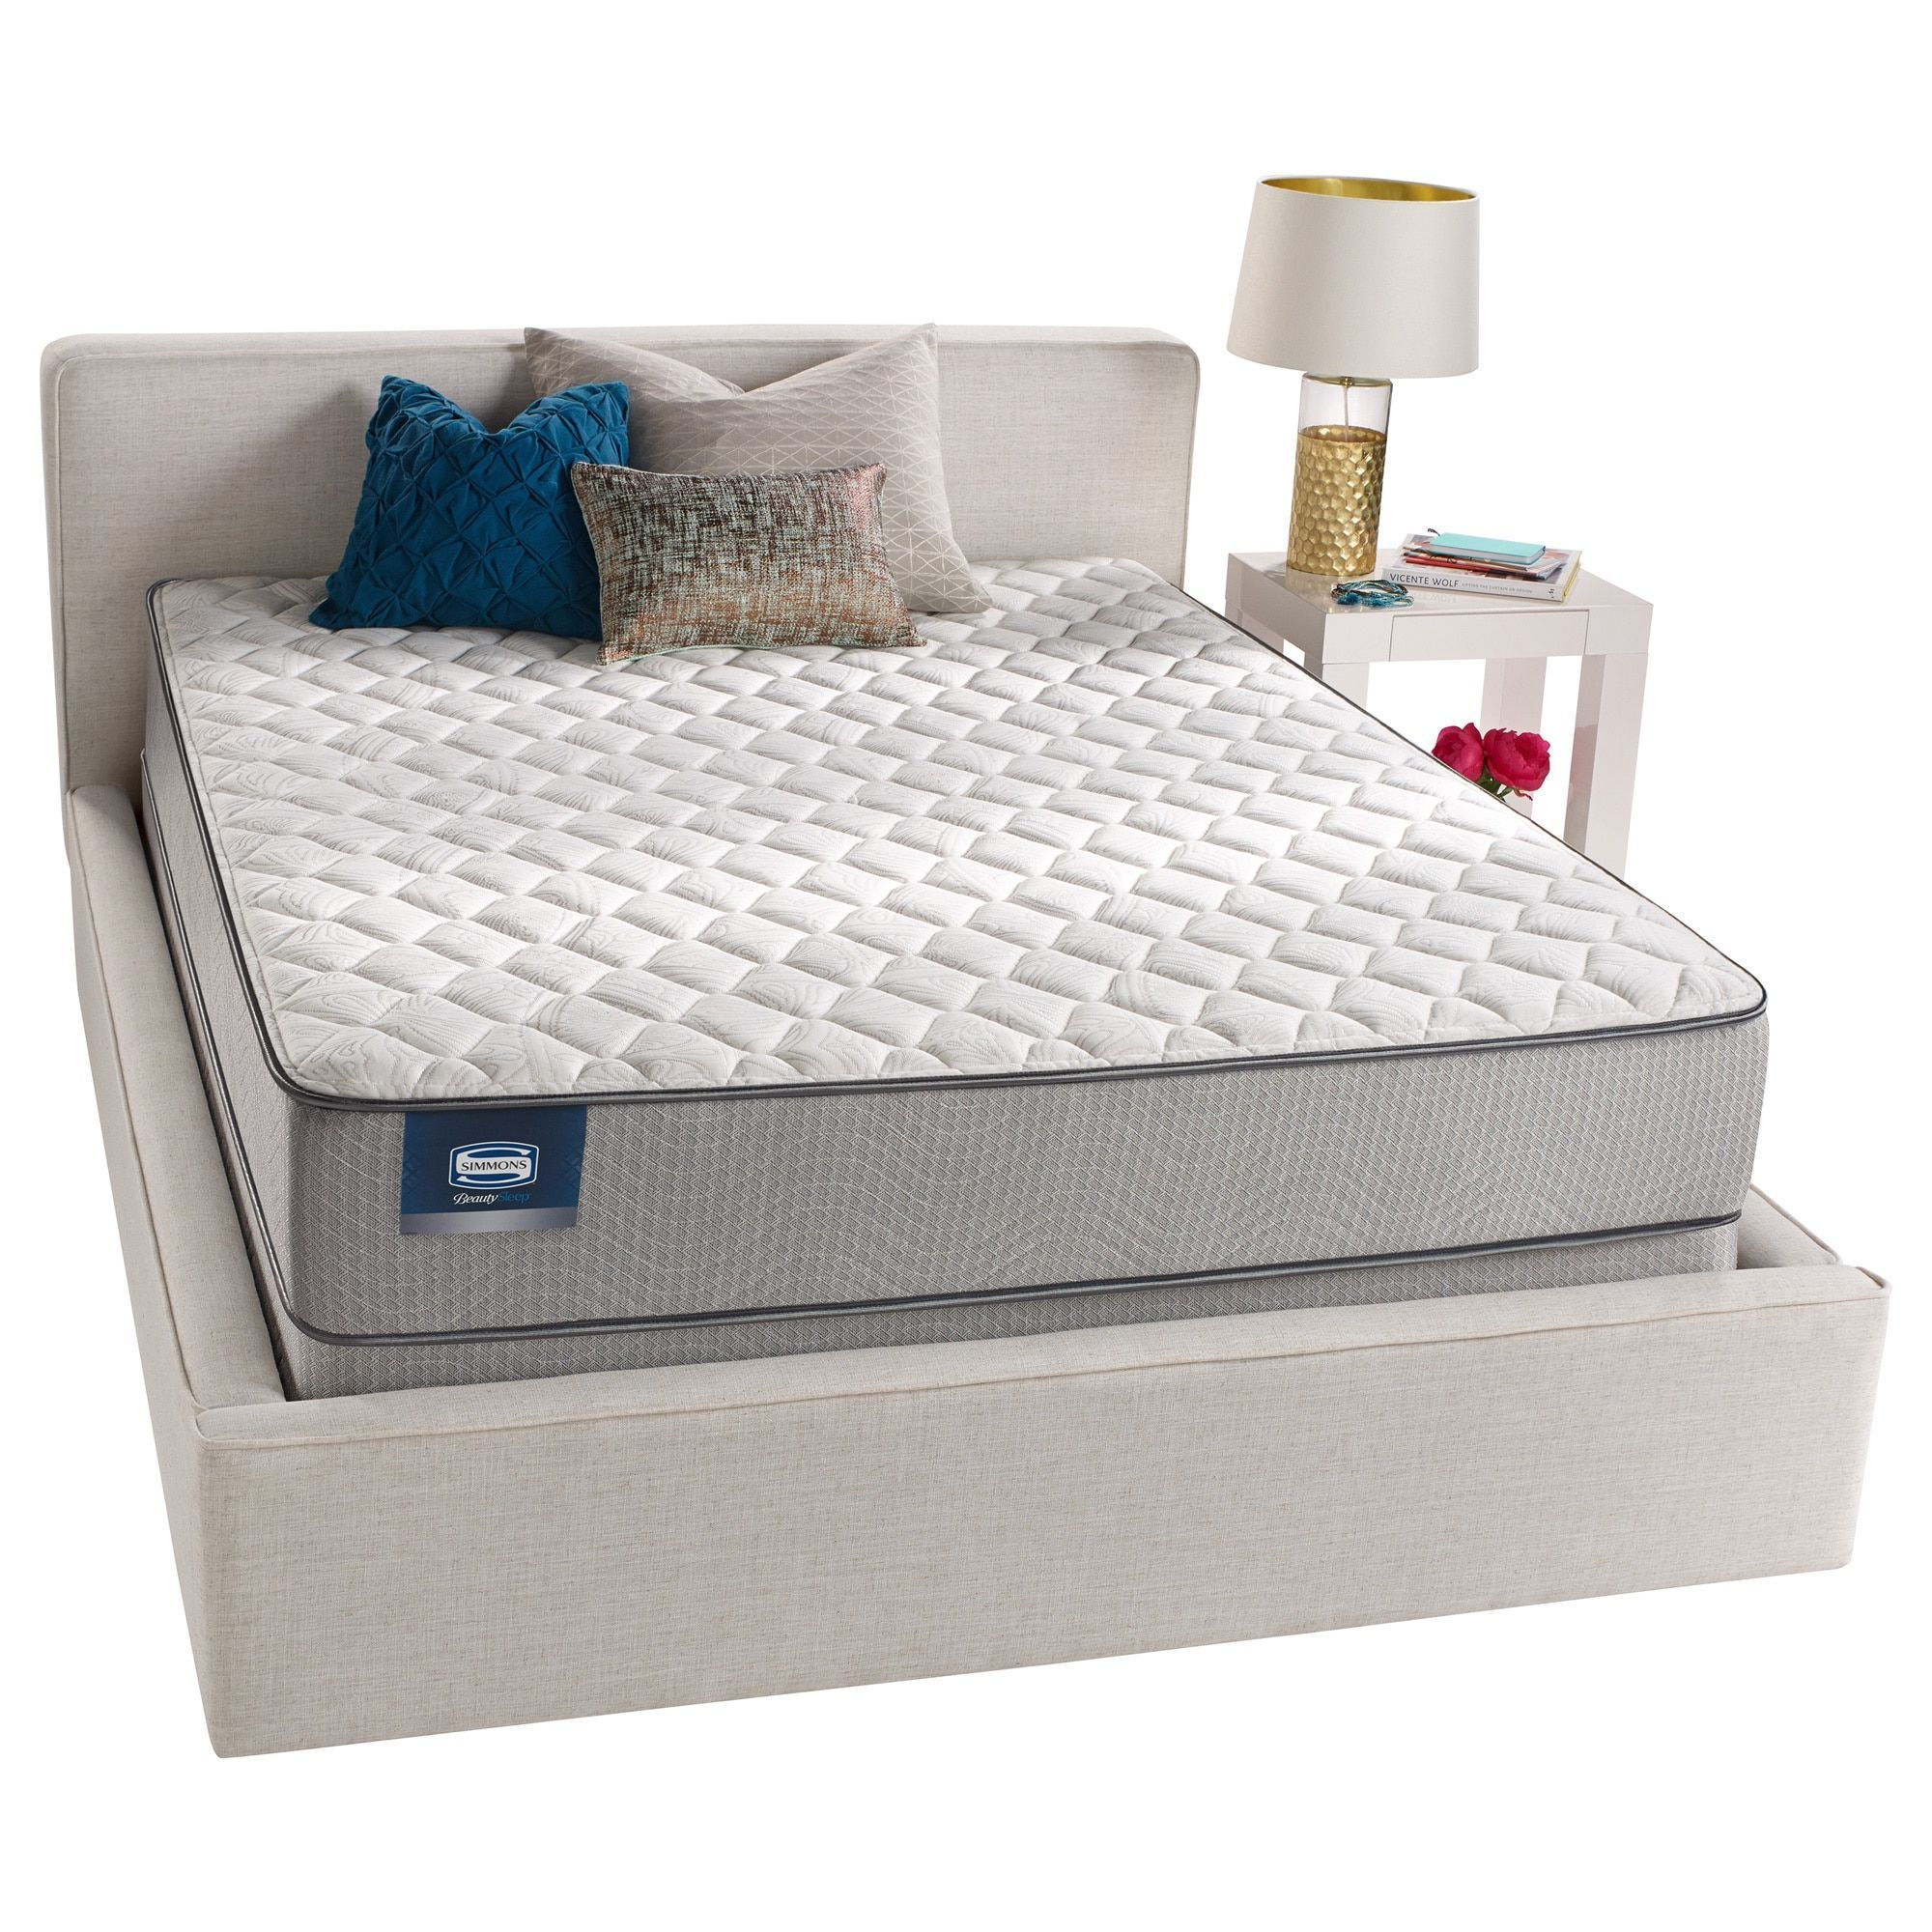 Online Shopping Bedding Furniture Electronics Jewelry Clothing More Mattress Sets Full Size Mattress Mattress